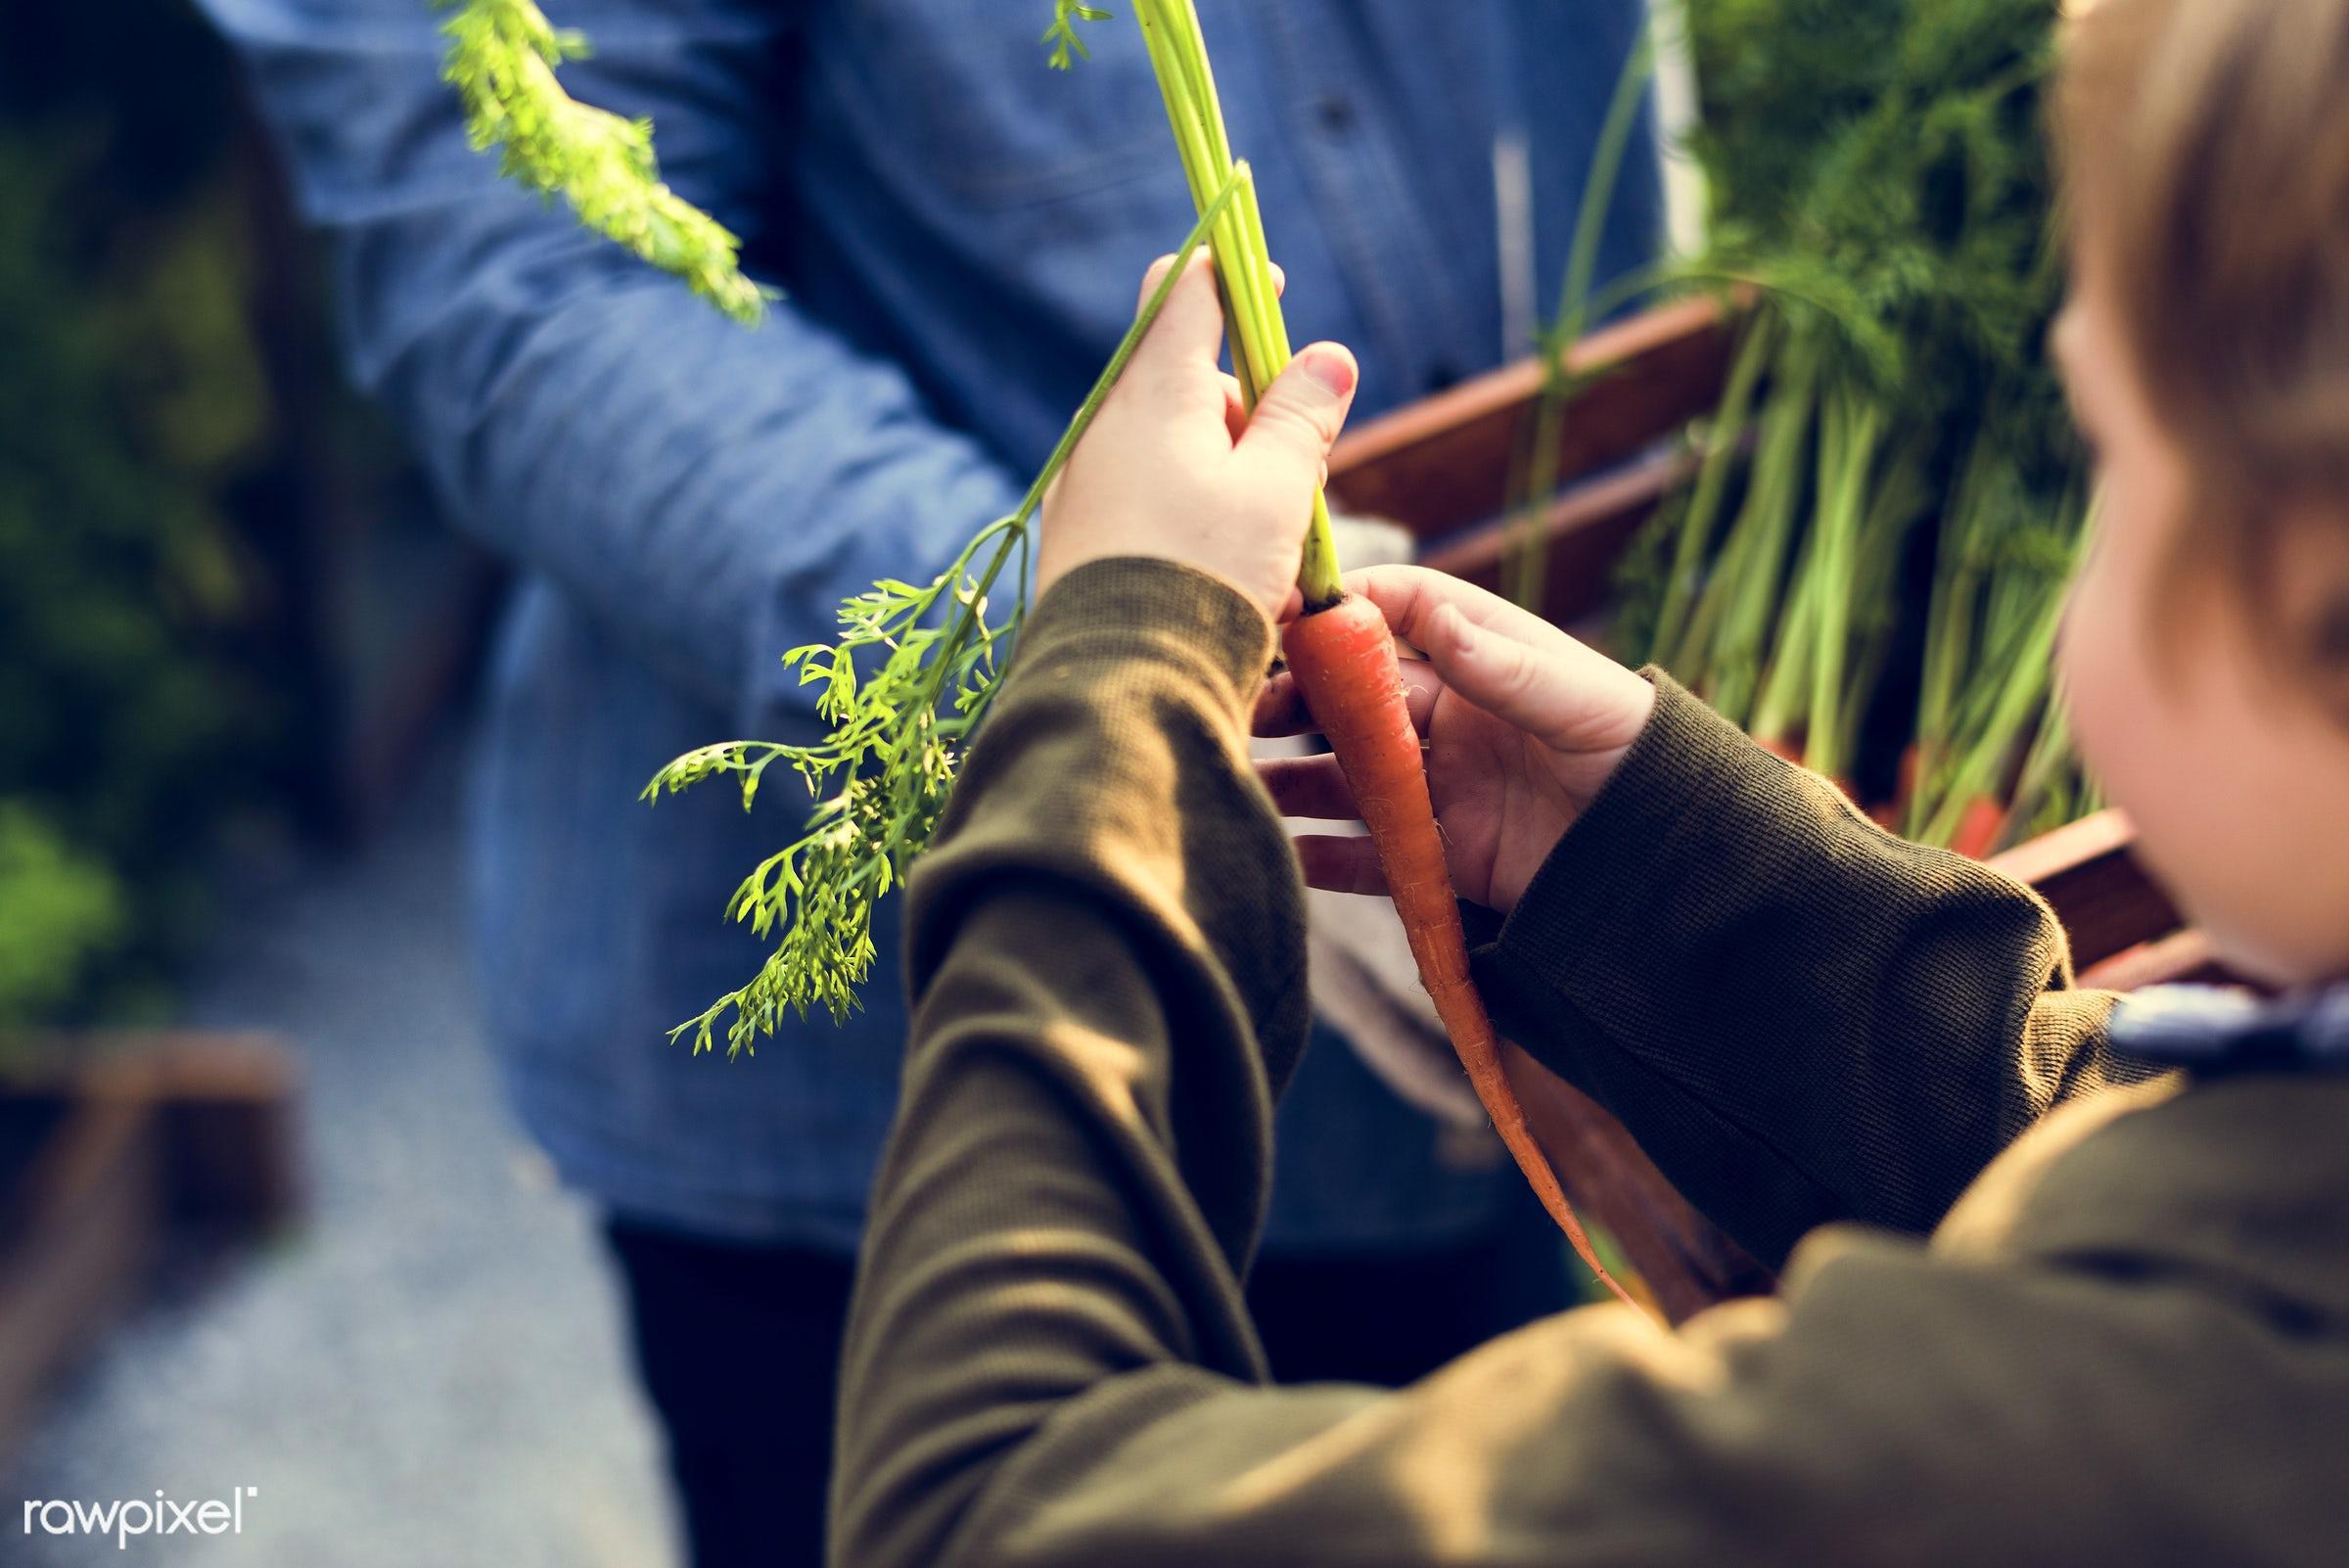 plant, raw, carrot, botany, people, hand, farmer, nature, conservation, fresh, vegetarian, ingredient, ecology, hold, season...